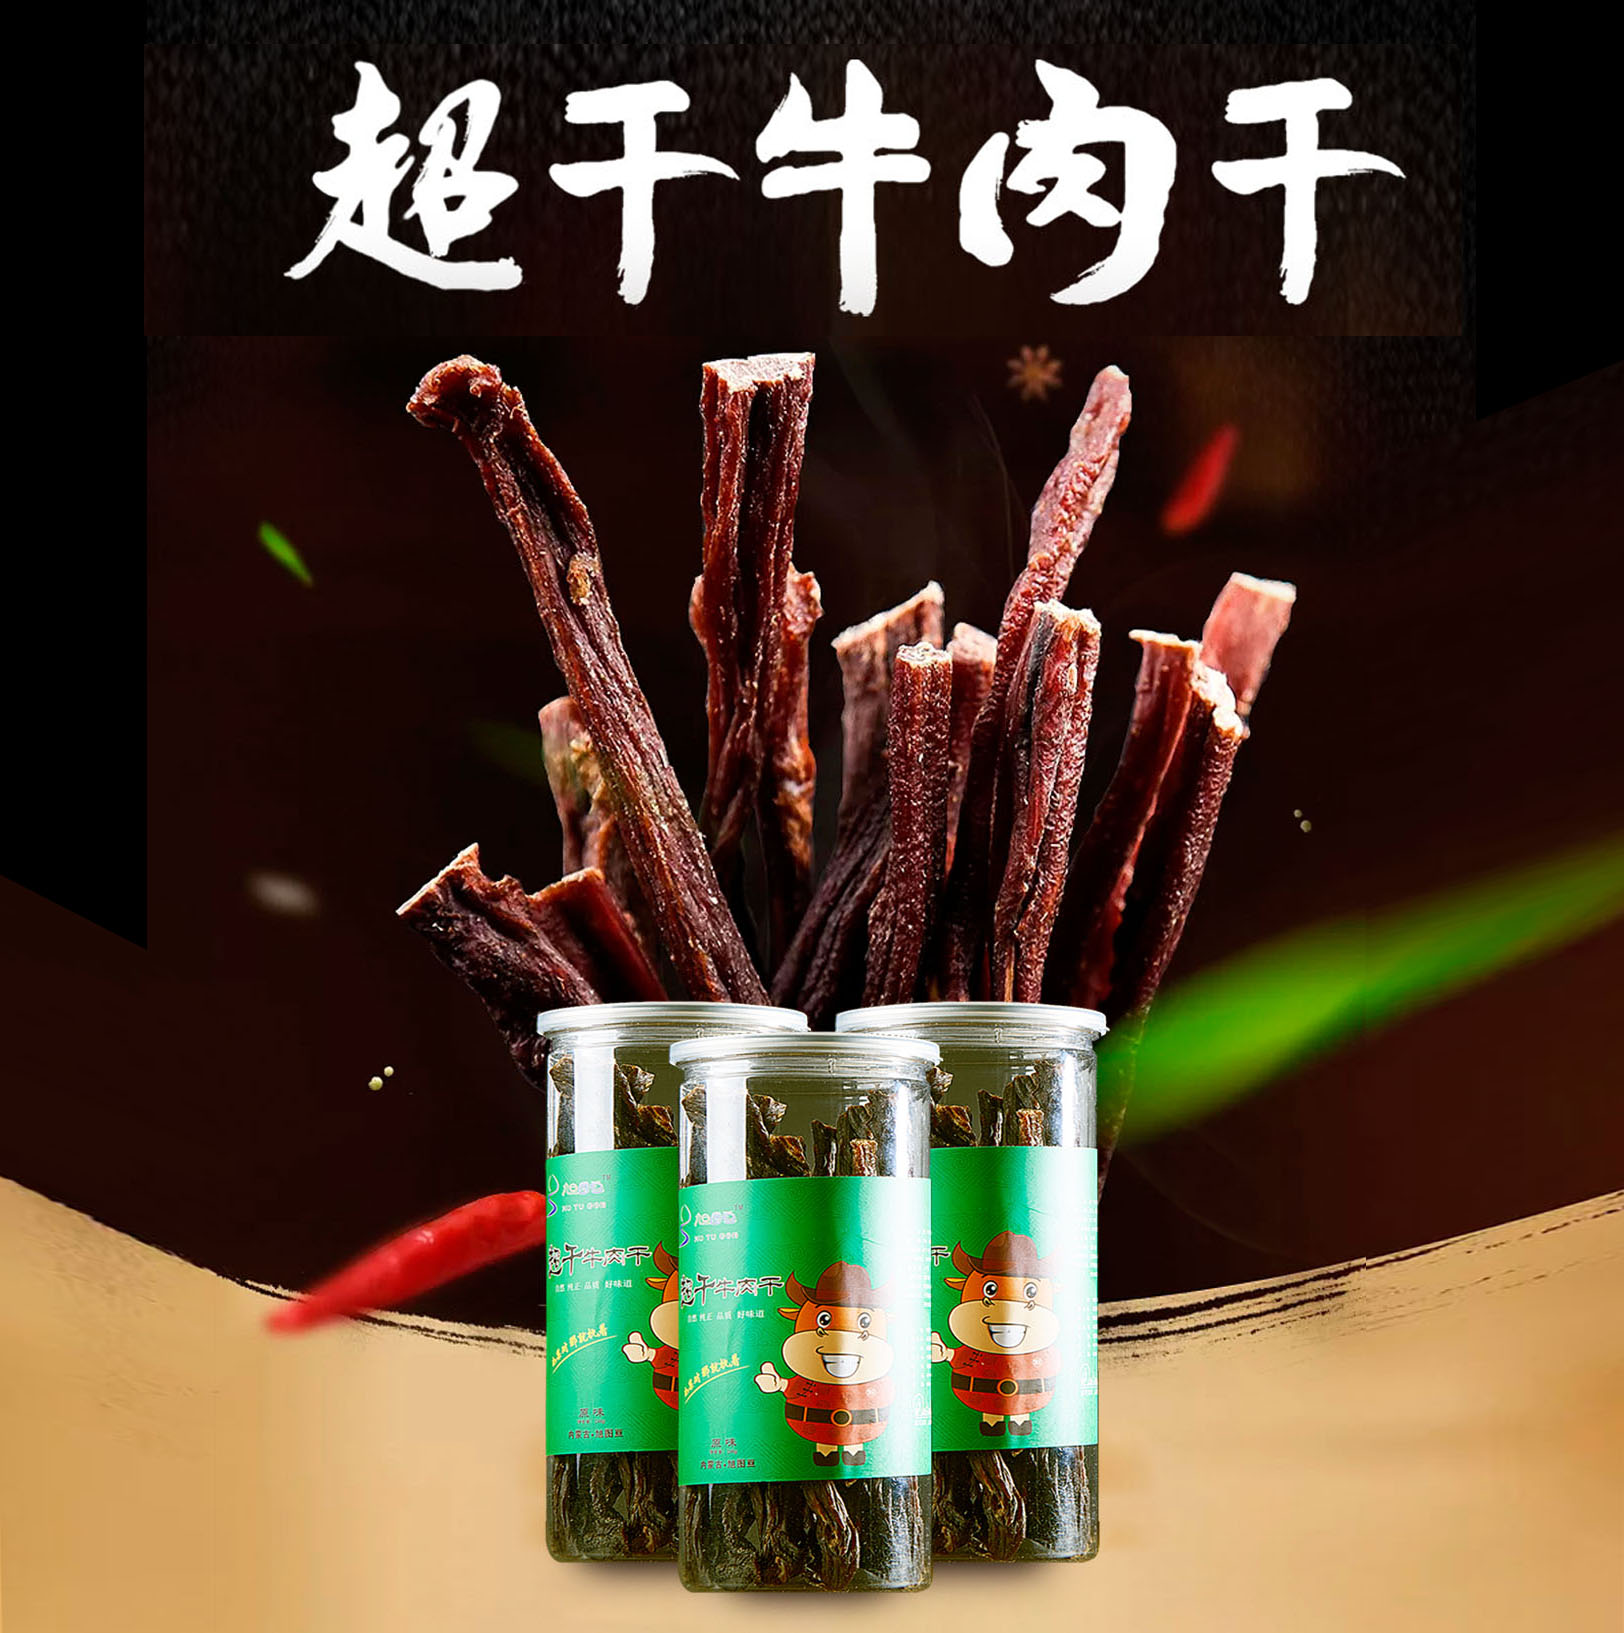 Chi66 xutugen super dried beef jerky nvliu Inner Mongolia specialty 248g authentic hand torn [2 barrels parcel post]